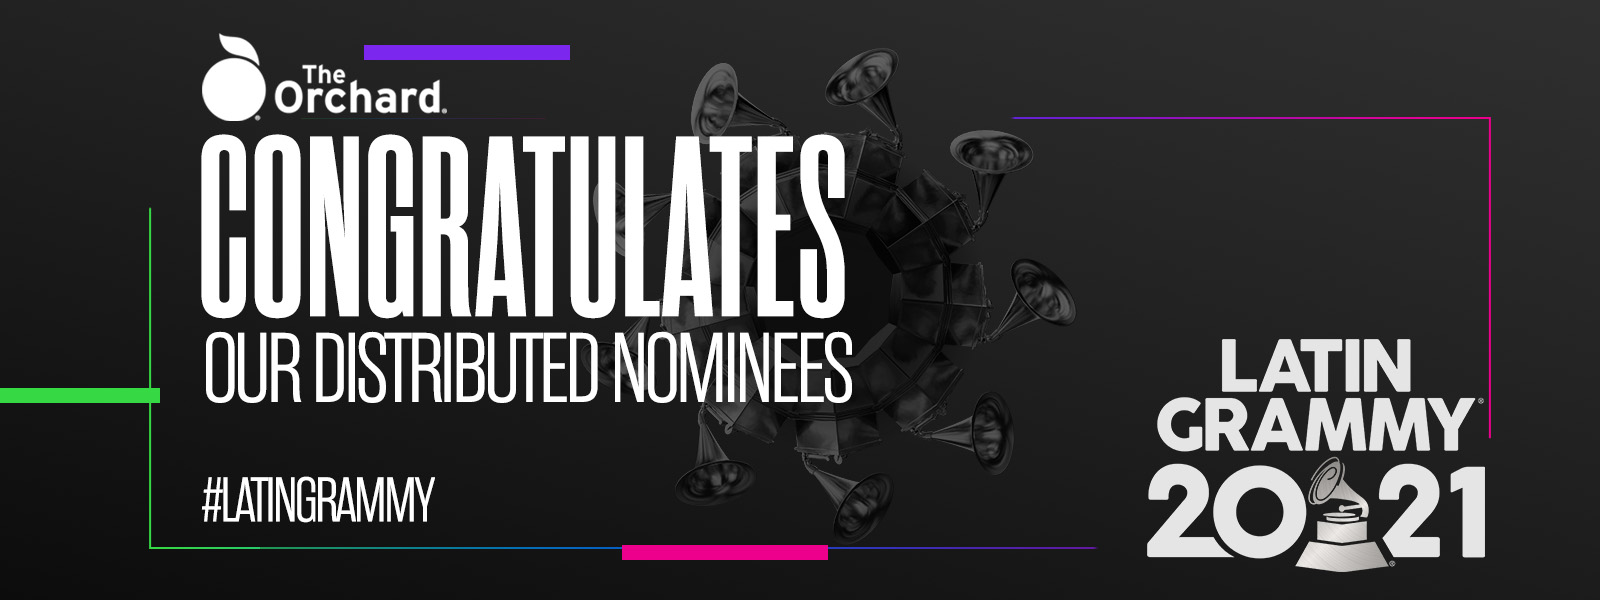 The Orchard Congratulates Our 2021 Latin GRAMMY Award Nominees